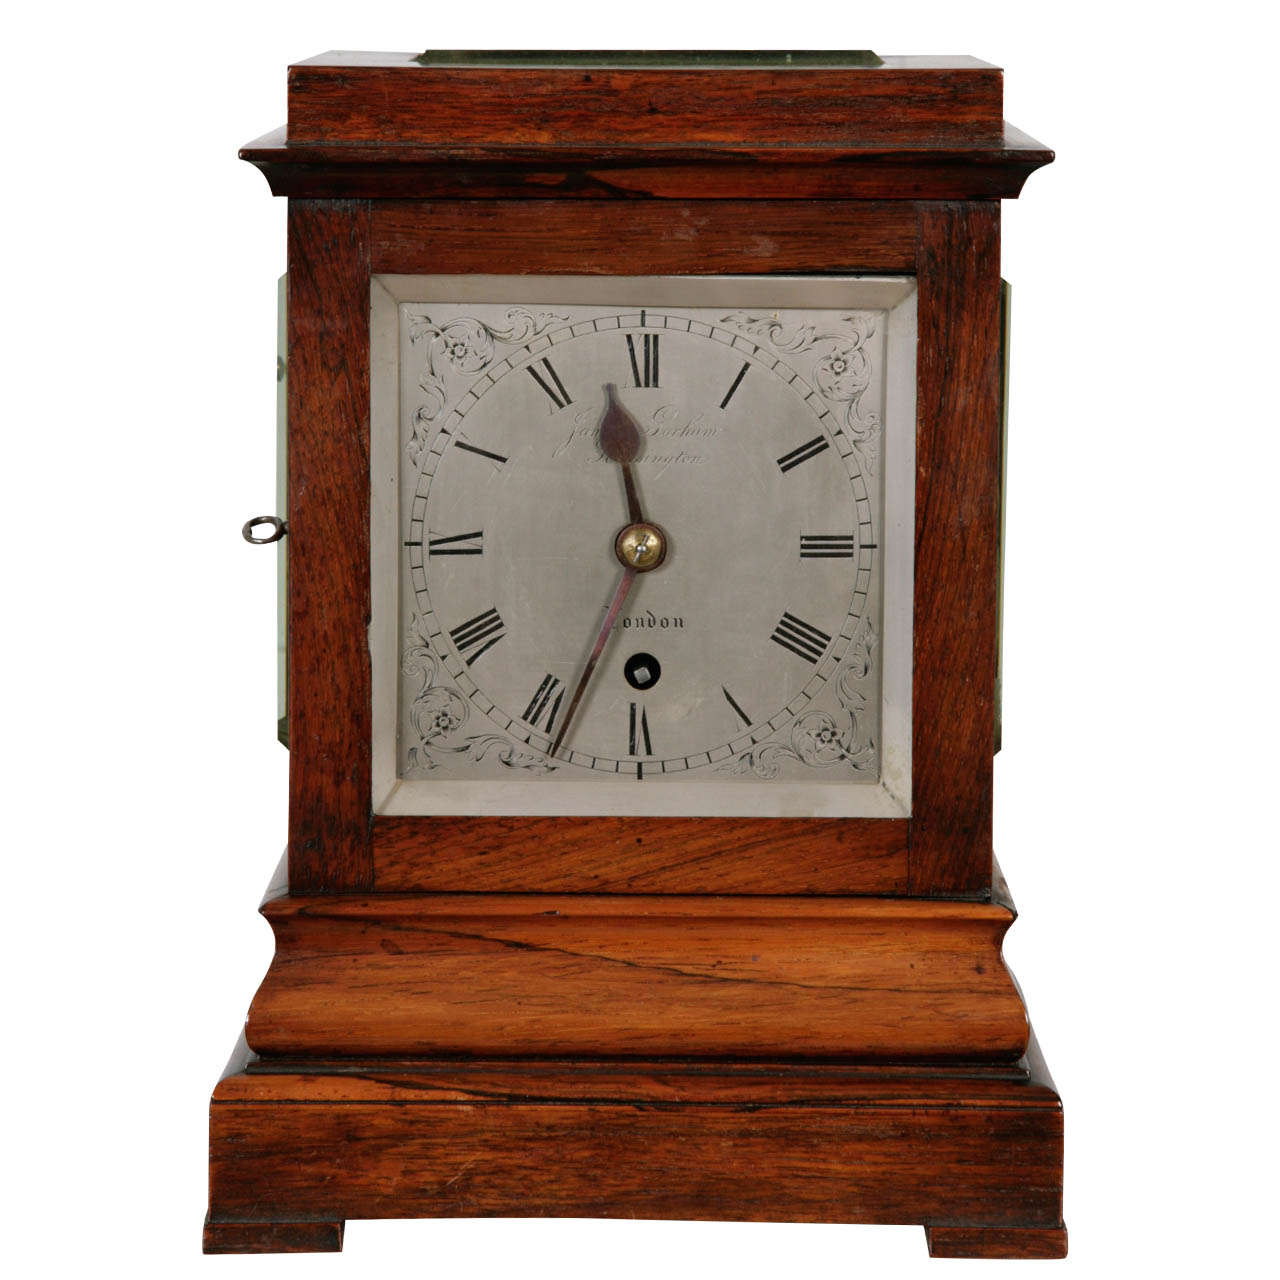 Antique Mantel Clock By James Gorham Kensington London